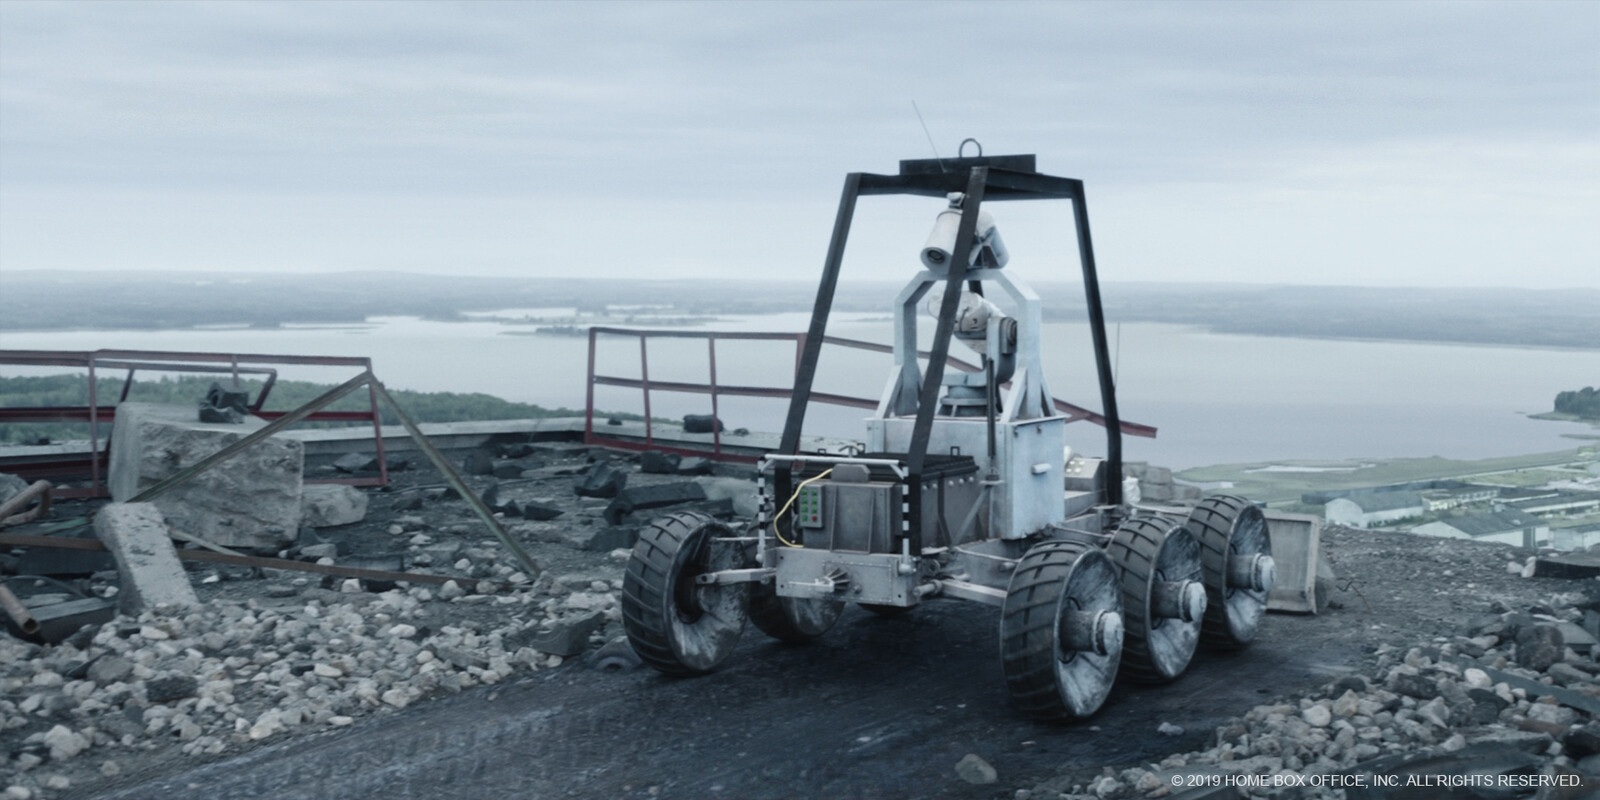 'Lunar' rover - secondary modelling, texturing and lookdev, shot lighting